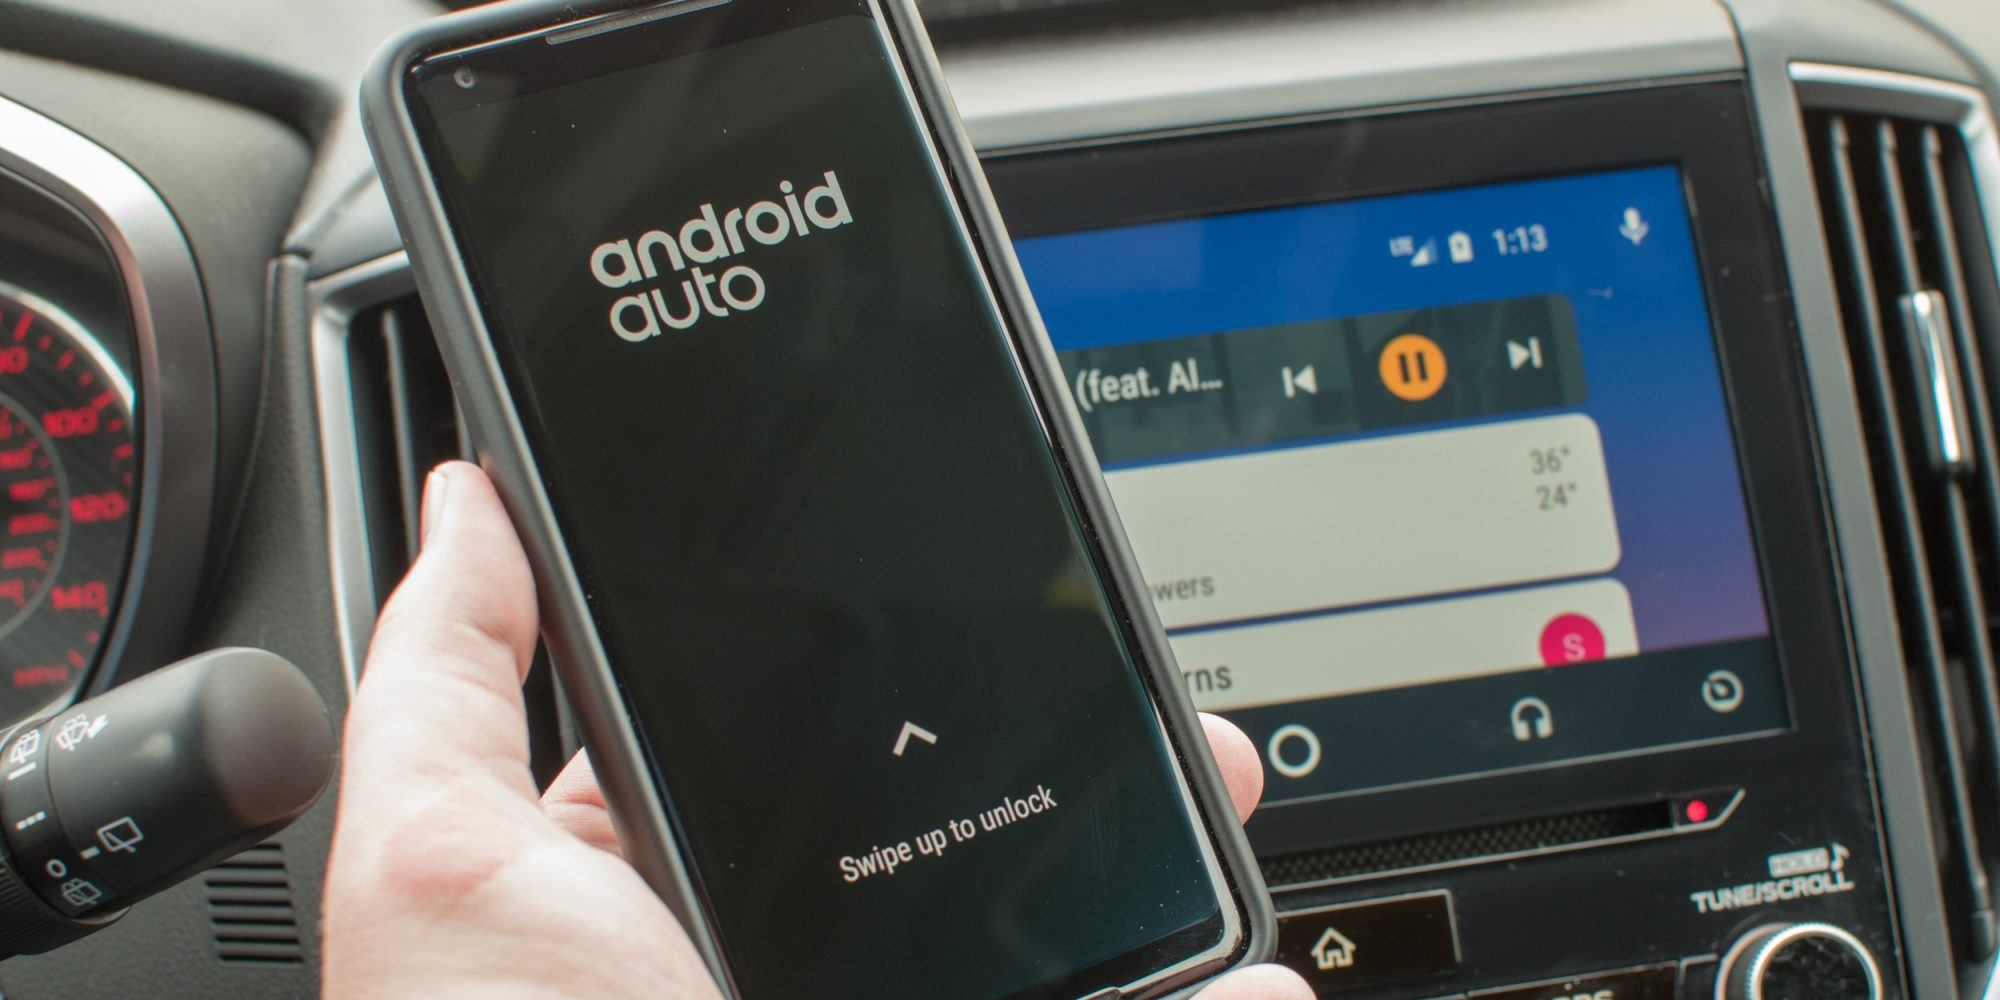 Unlock Car With Phone >> 10 Things to Know About Android Auto - Connected Car Life